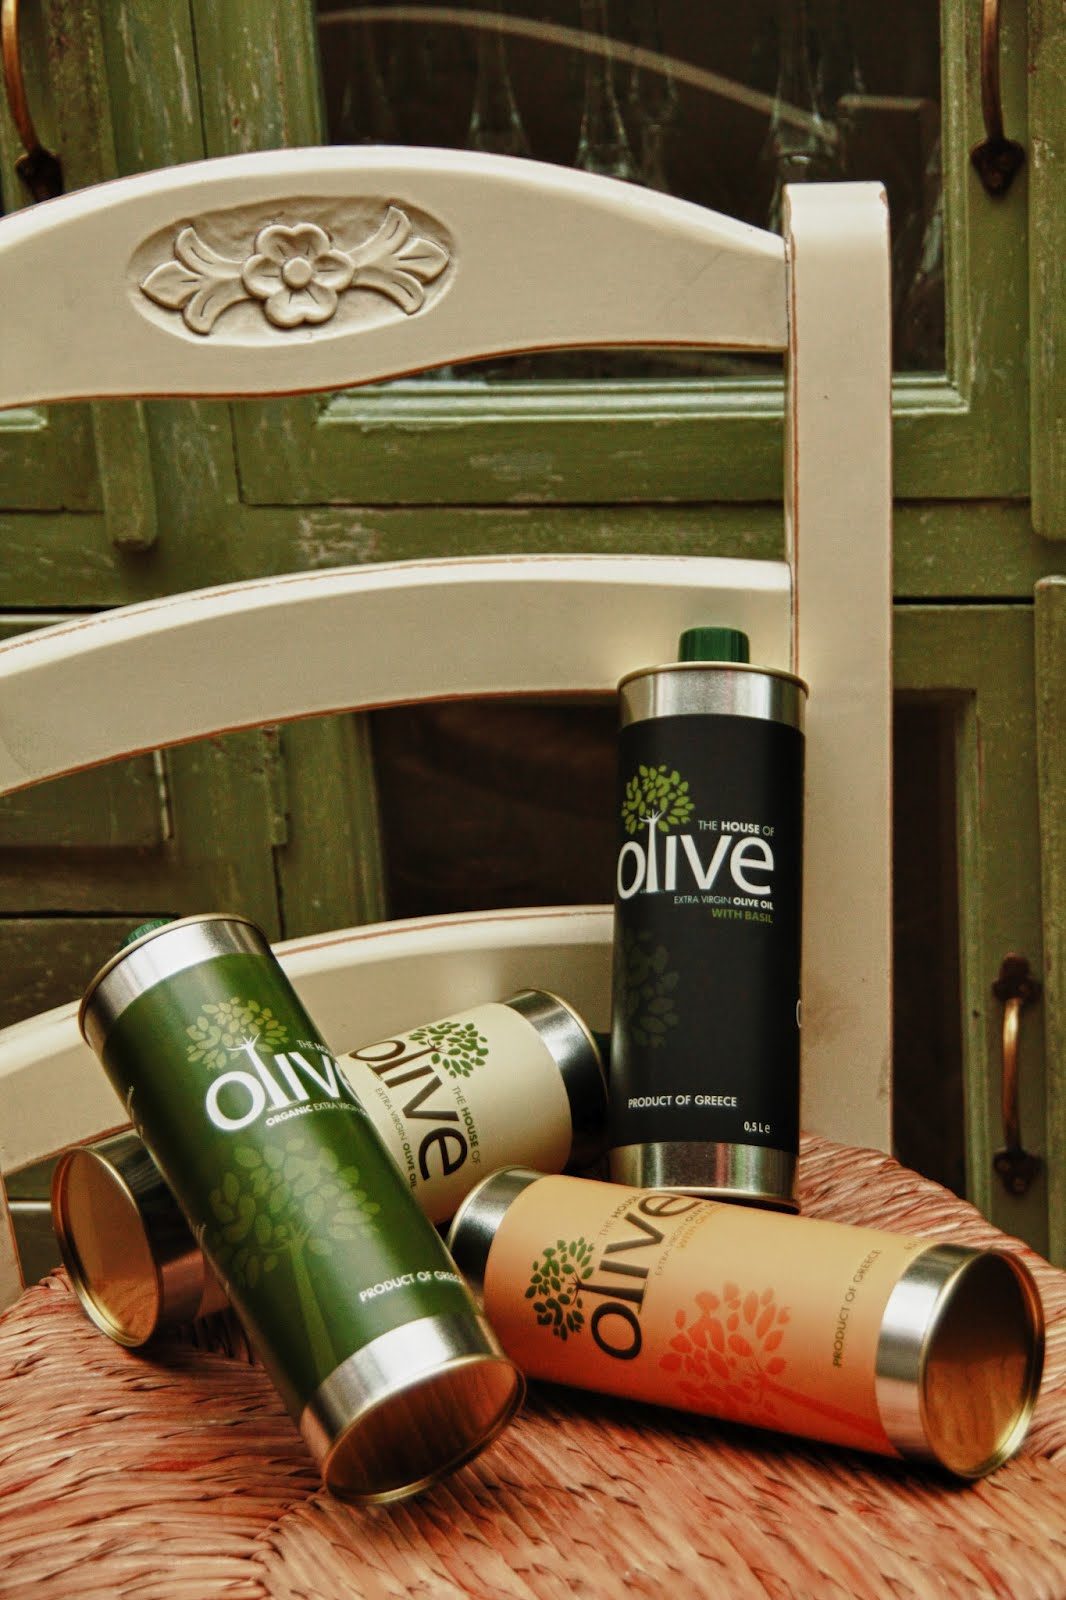 The House of Olive